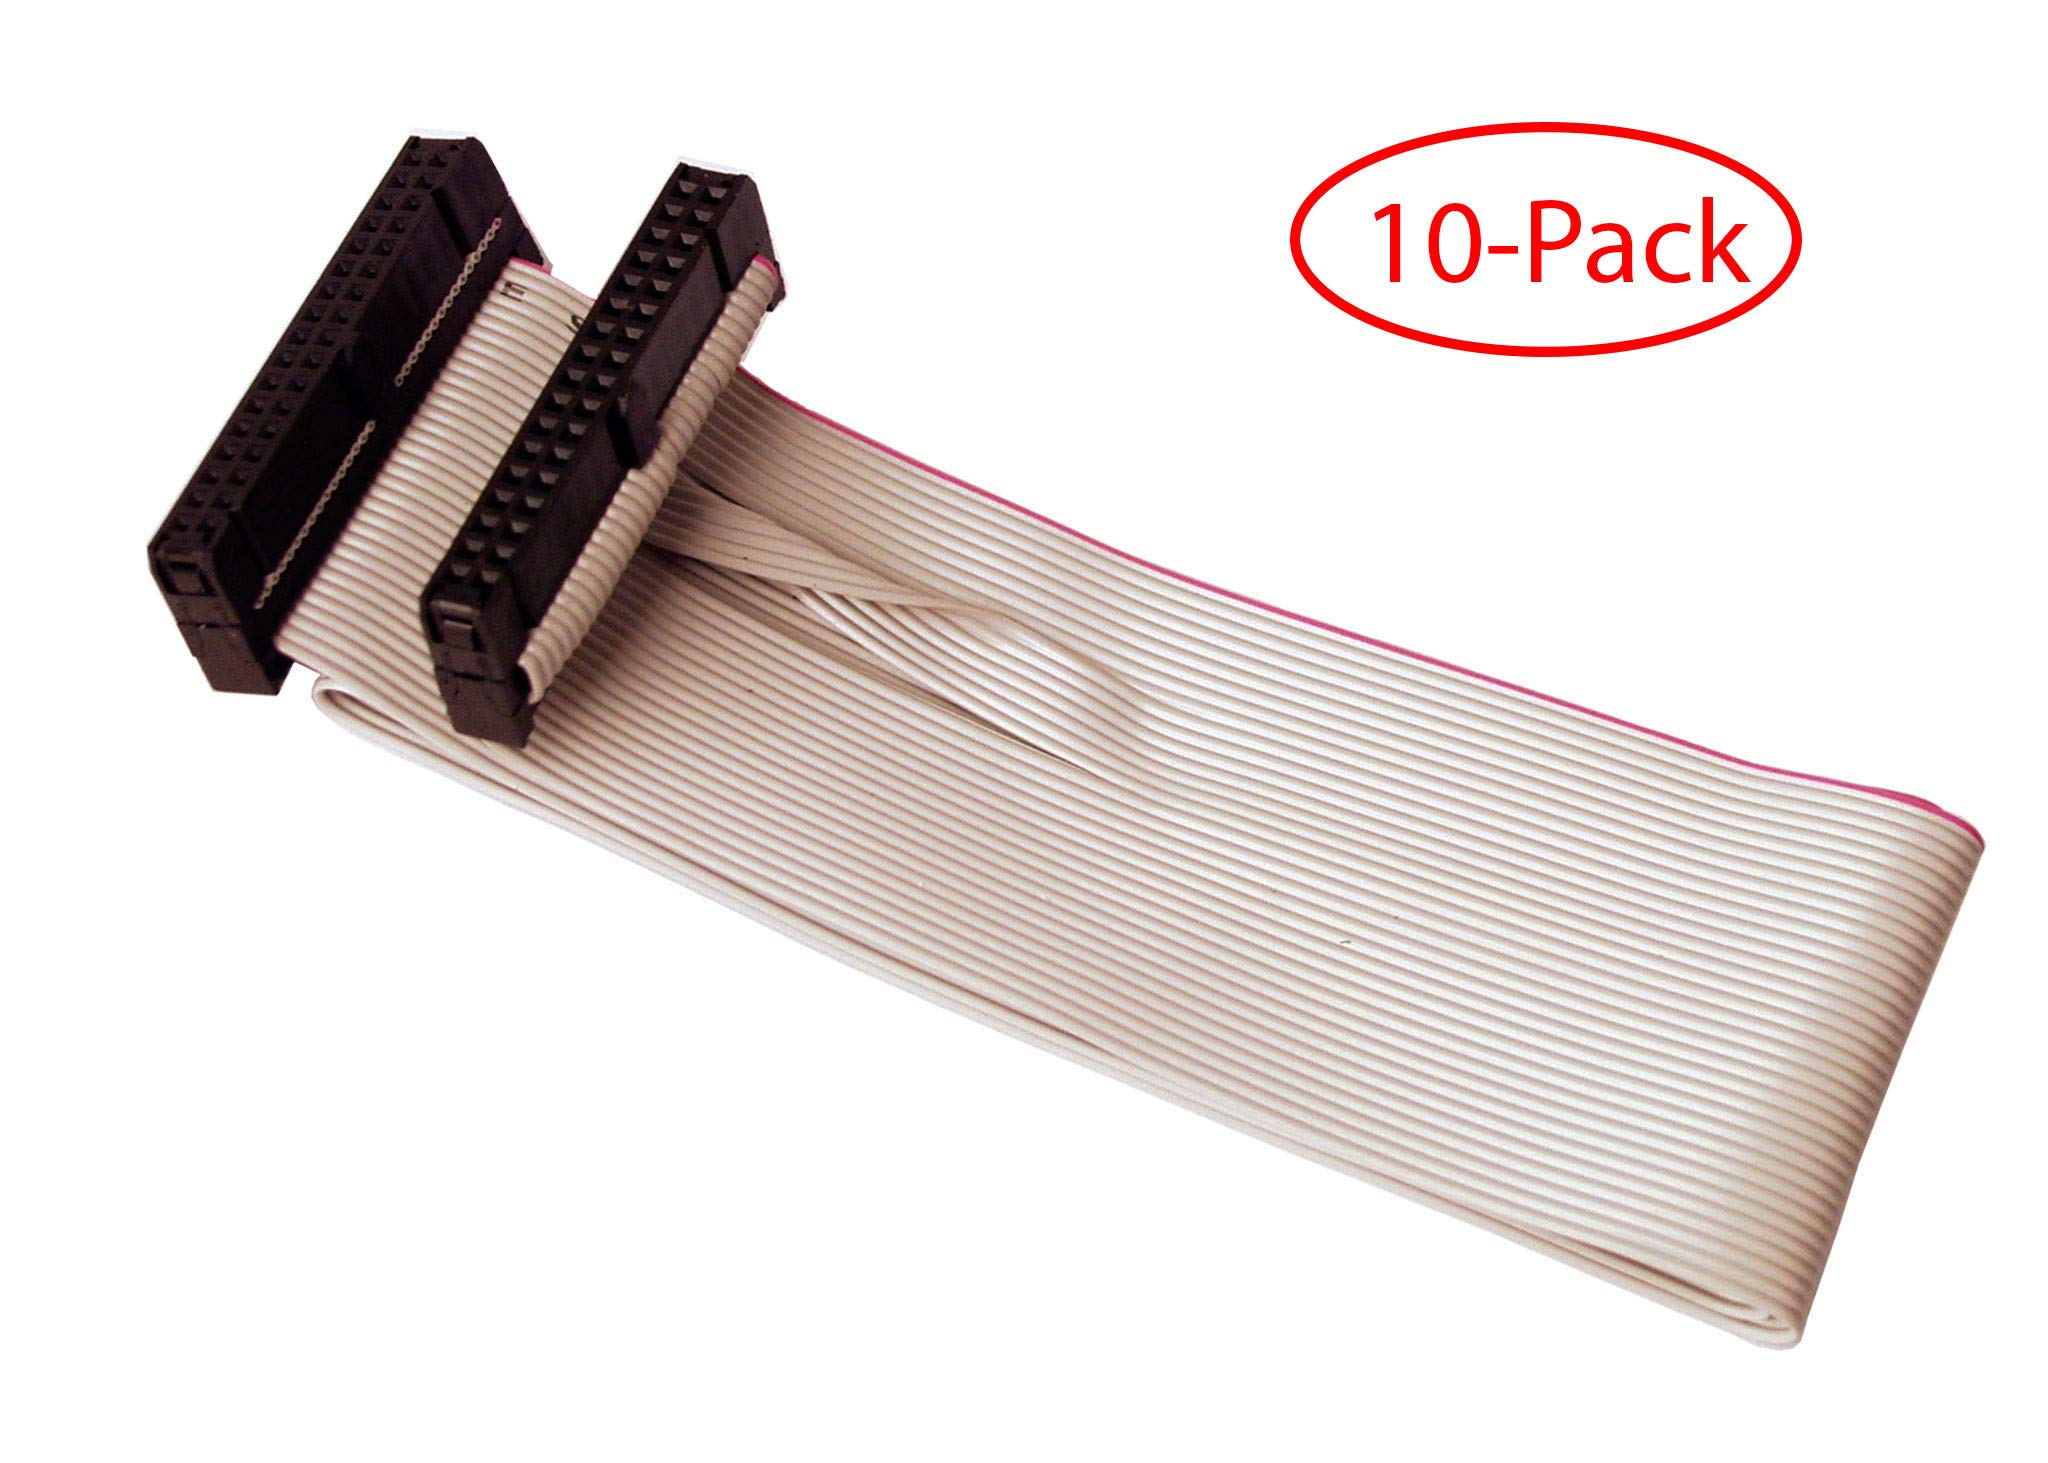 IAENCLOSURES CAB-FDDS19-10PK 19 inch Standard 34 pin Floppy Drive Cable for Industrial Computer Board. (2) 34 Pin 2.54mm Pitch Female Connectors. (10 Pack Version) by IAENCLOSURES